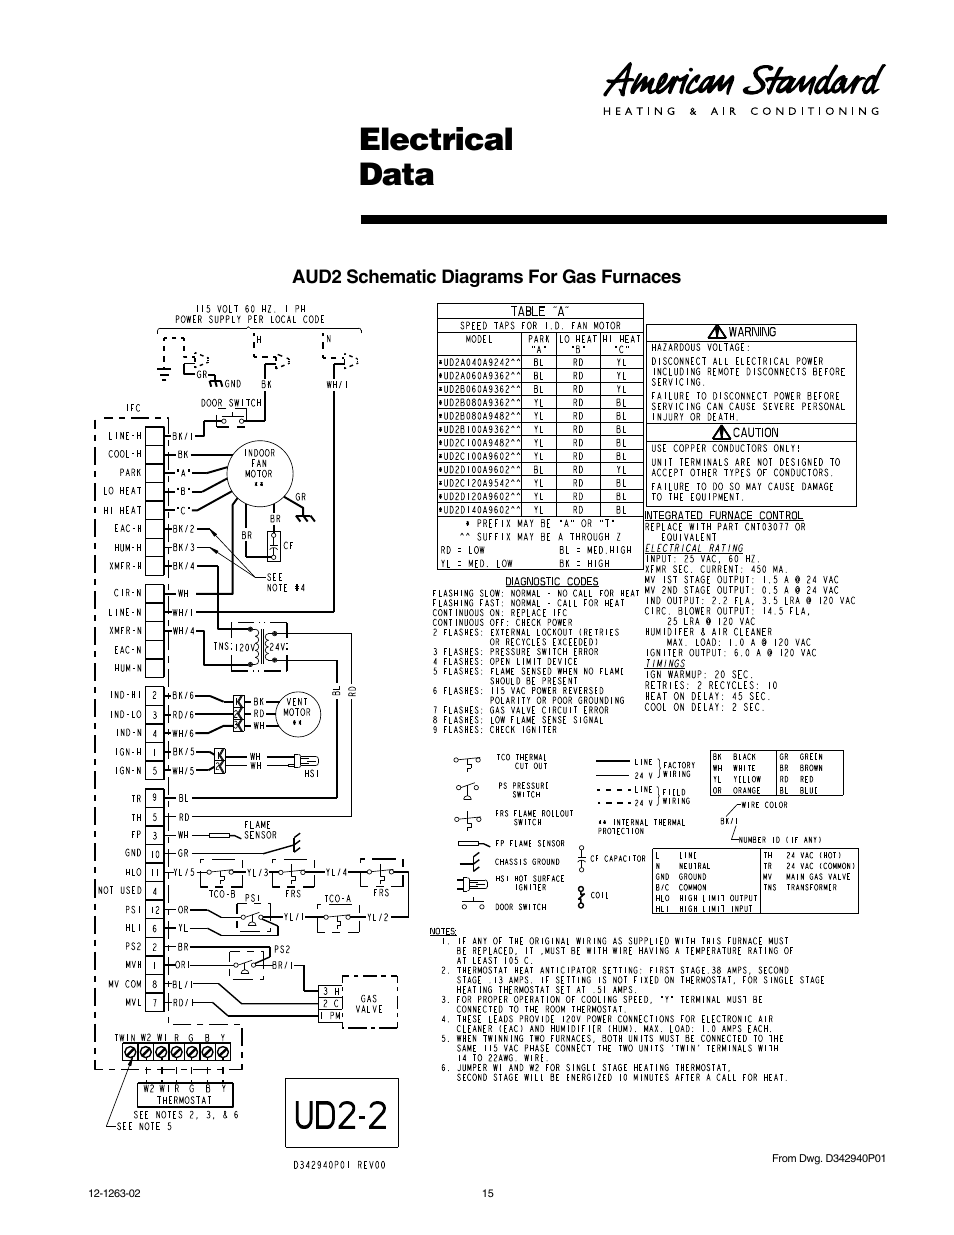 [DIAGRAM] Trane Air Handler Wiring Diagram FULL Version HD